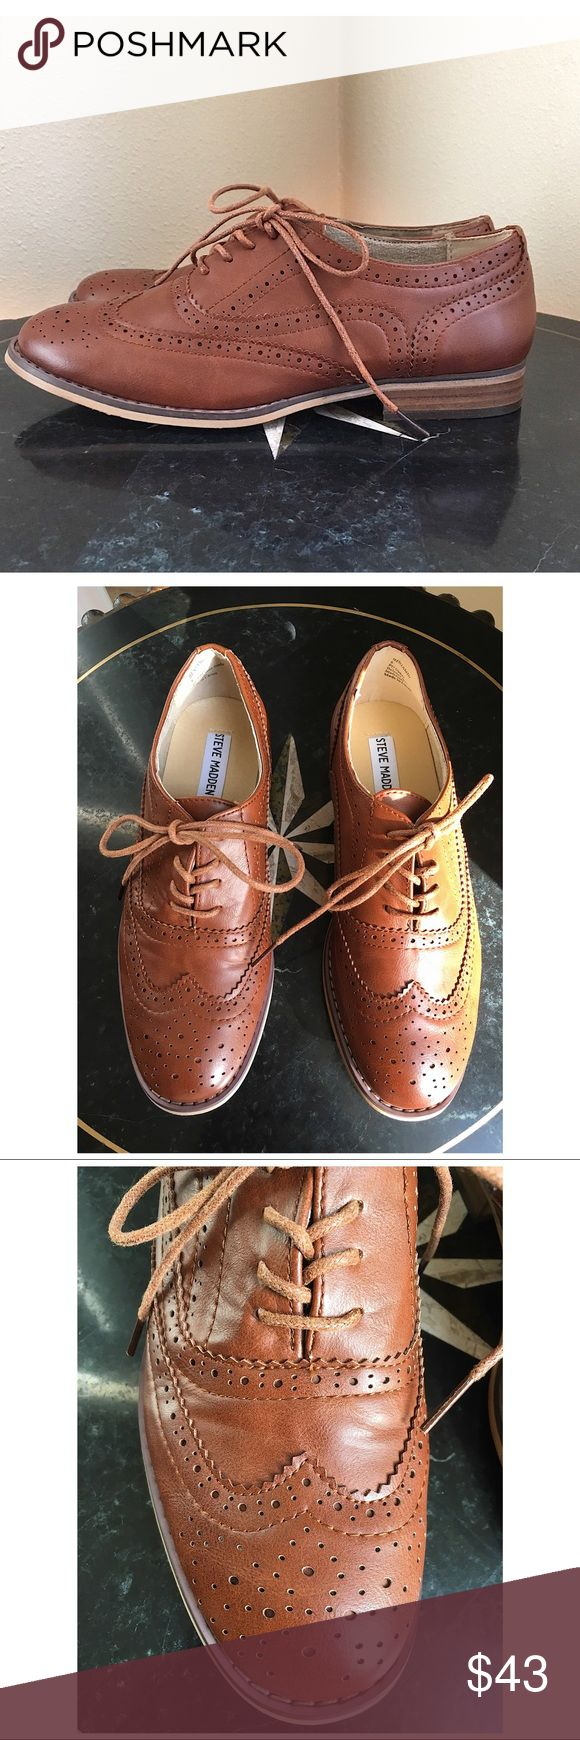 """STEVE MADDEN OXFORD New without box or tags. Steve Madden BENJAMIN oxfords in a Luggage Brown color.  Man-made upper, Man-made lining, Man-made sole. 1 inch heel. ALL MEASUREMENTS ARE APPROXIMATE: LENGTH 10.25"""" WIDTH 3.75"""" (measured at ball if foot) Steve Madden Shoes Flats & Loafers"""